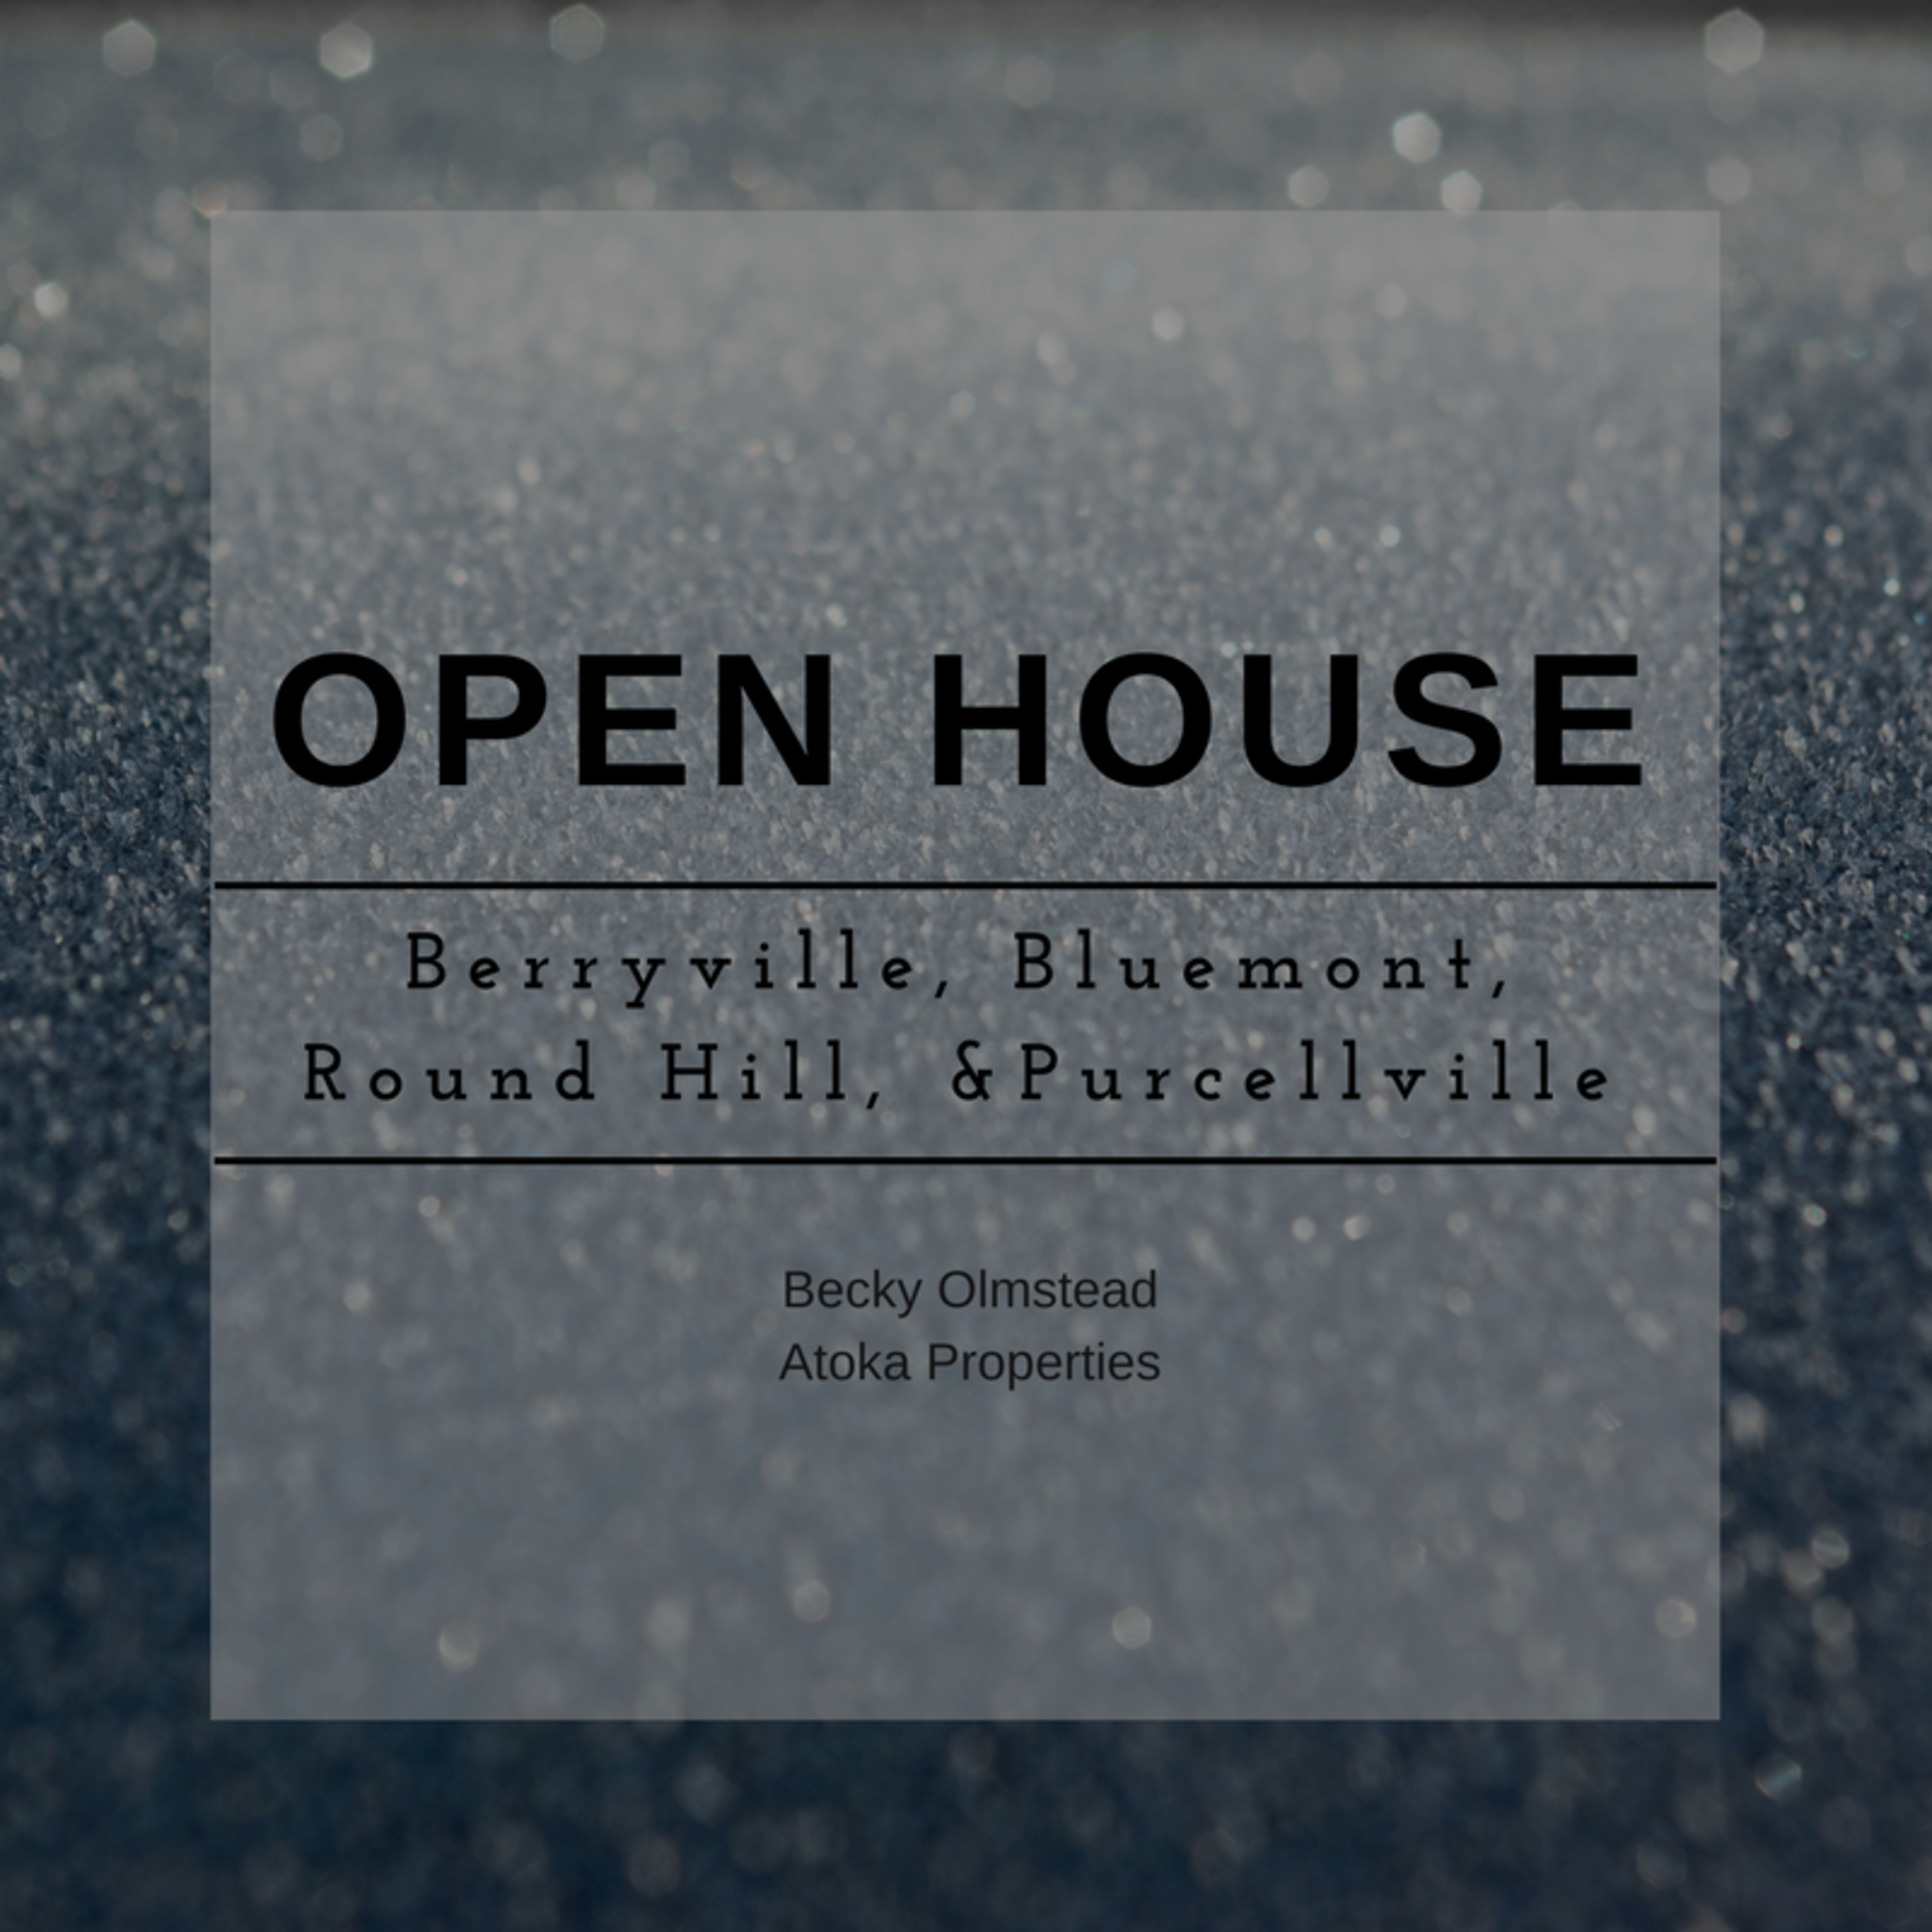 NOVEMBER 25 AND 26 OPEN HOUSE